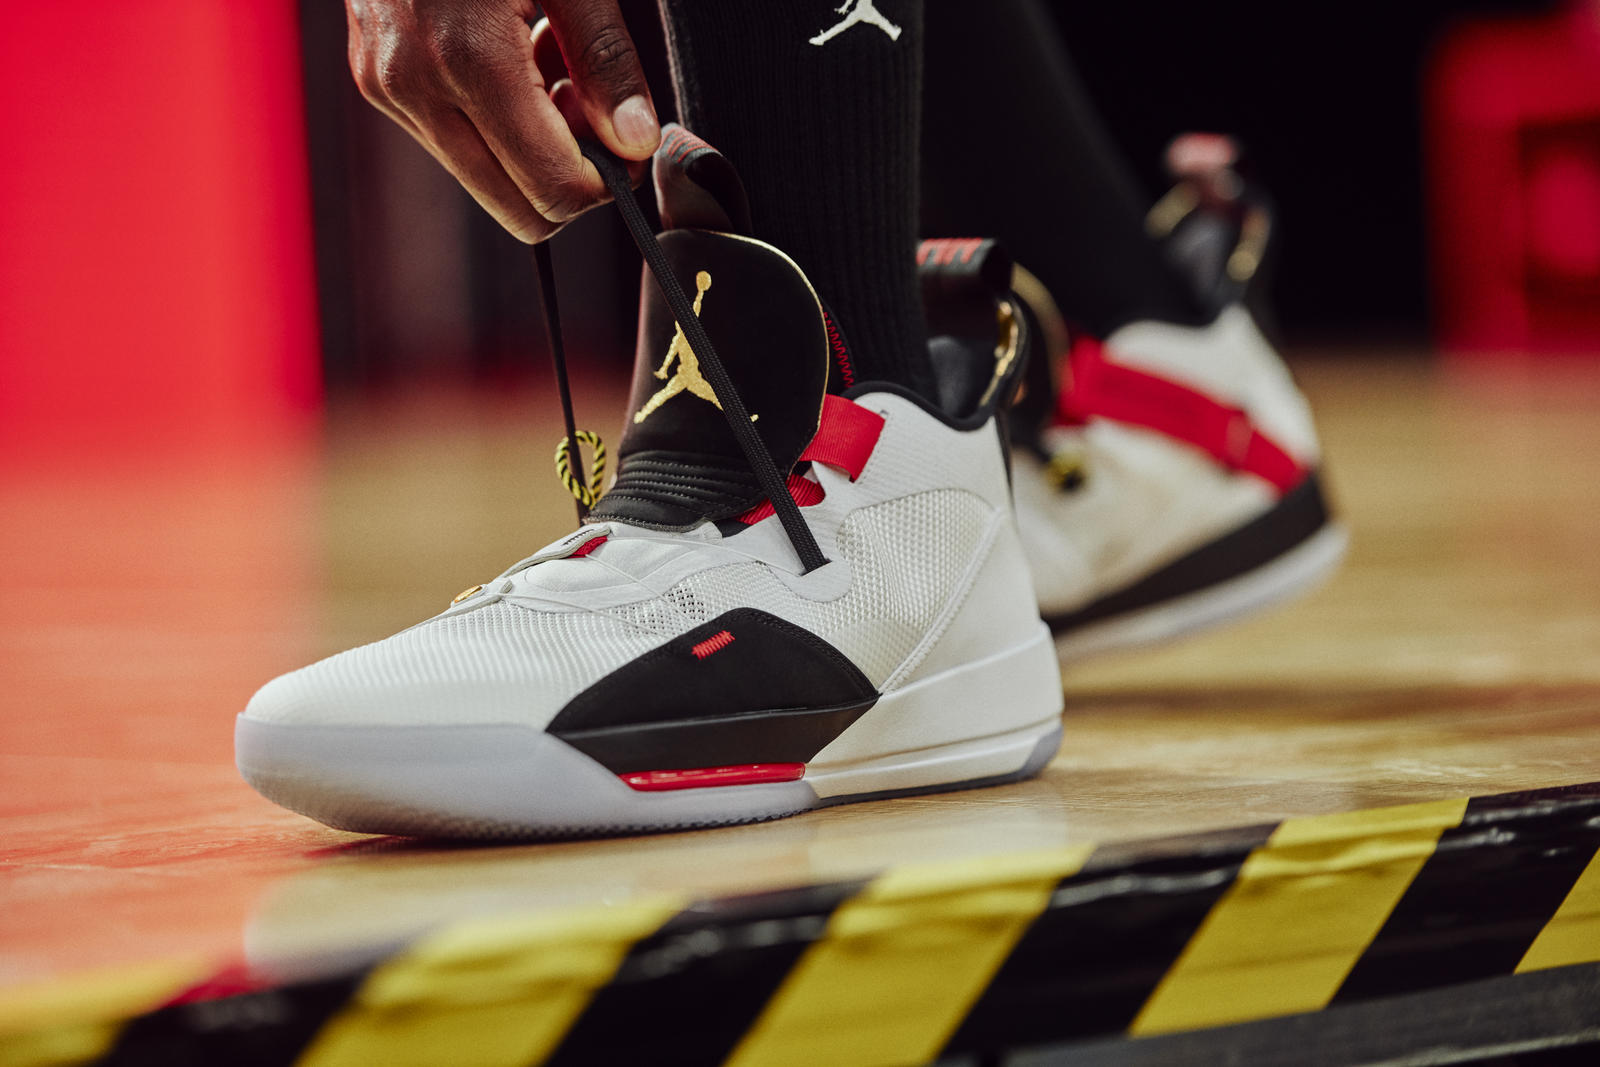 The Air Jordan 33 Introduces the FastFit System and Flight